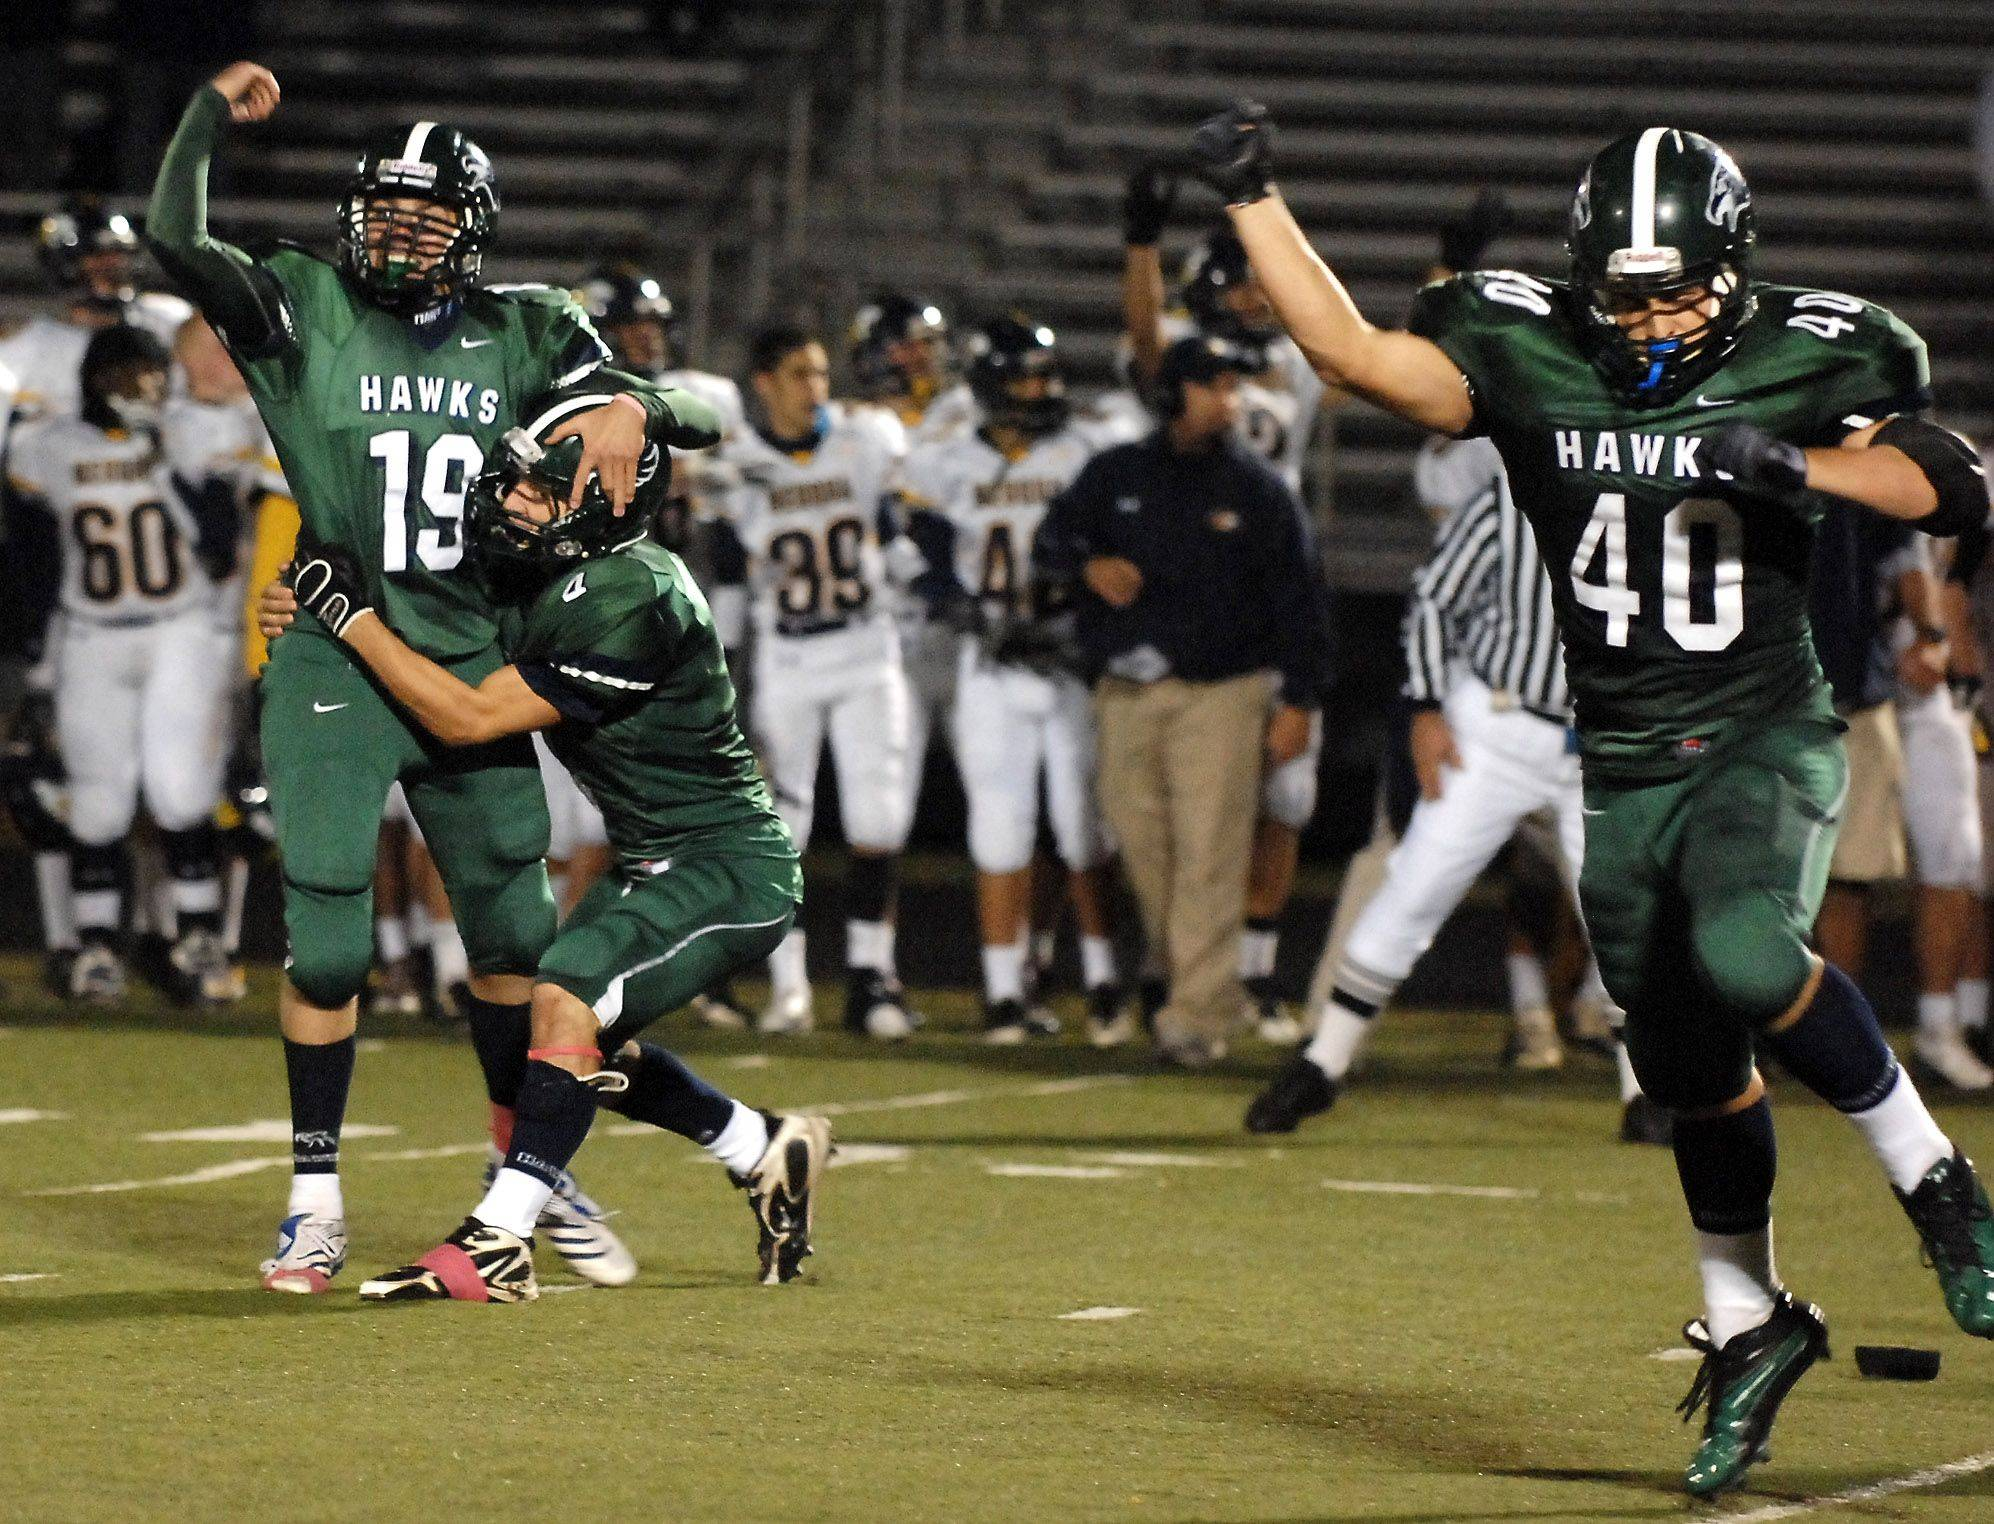 WEEK 8- Bartlett kicker Ian Dobek celebrates with holder Joey Scaminaci after kicking a 35-yard field goal with about 40 seconds left to give the Hawks a 25-23 lead .